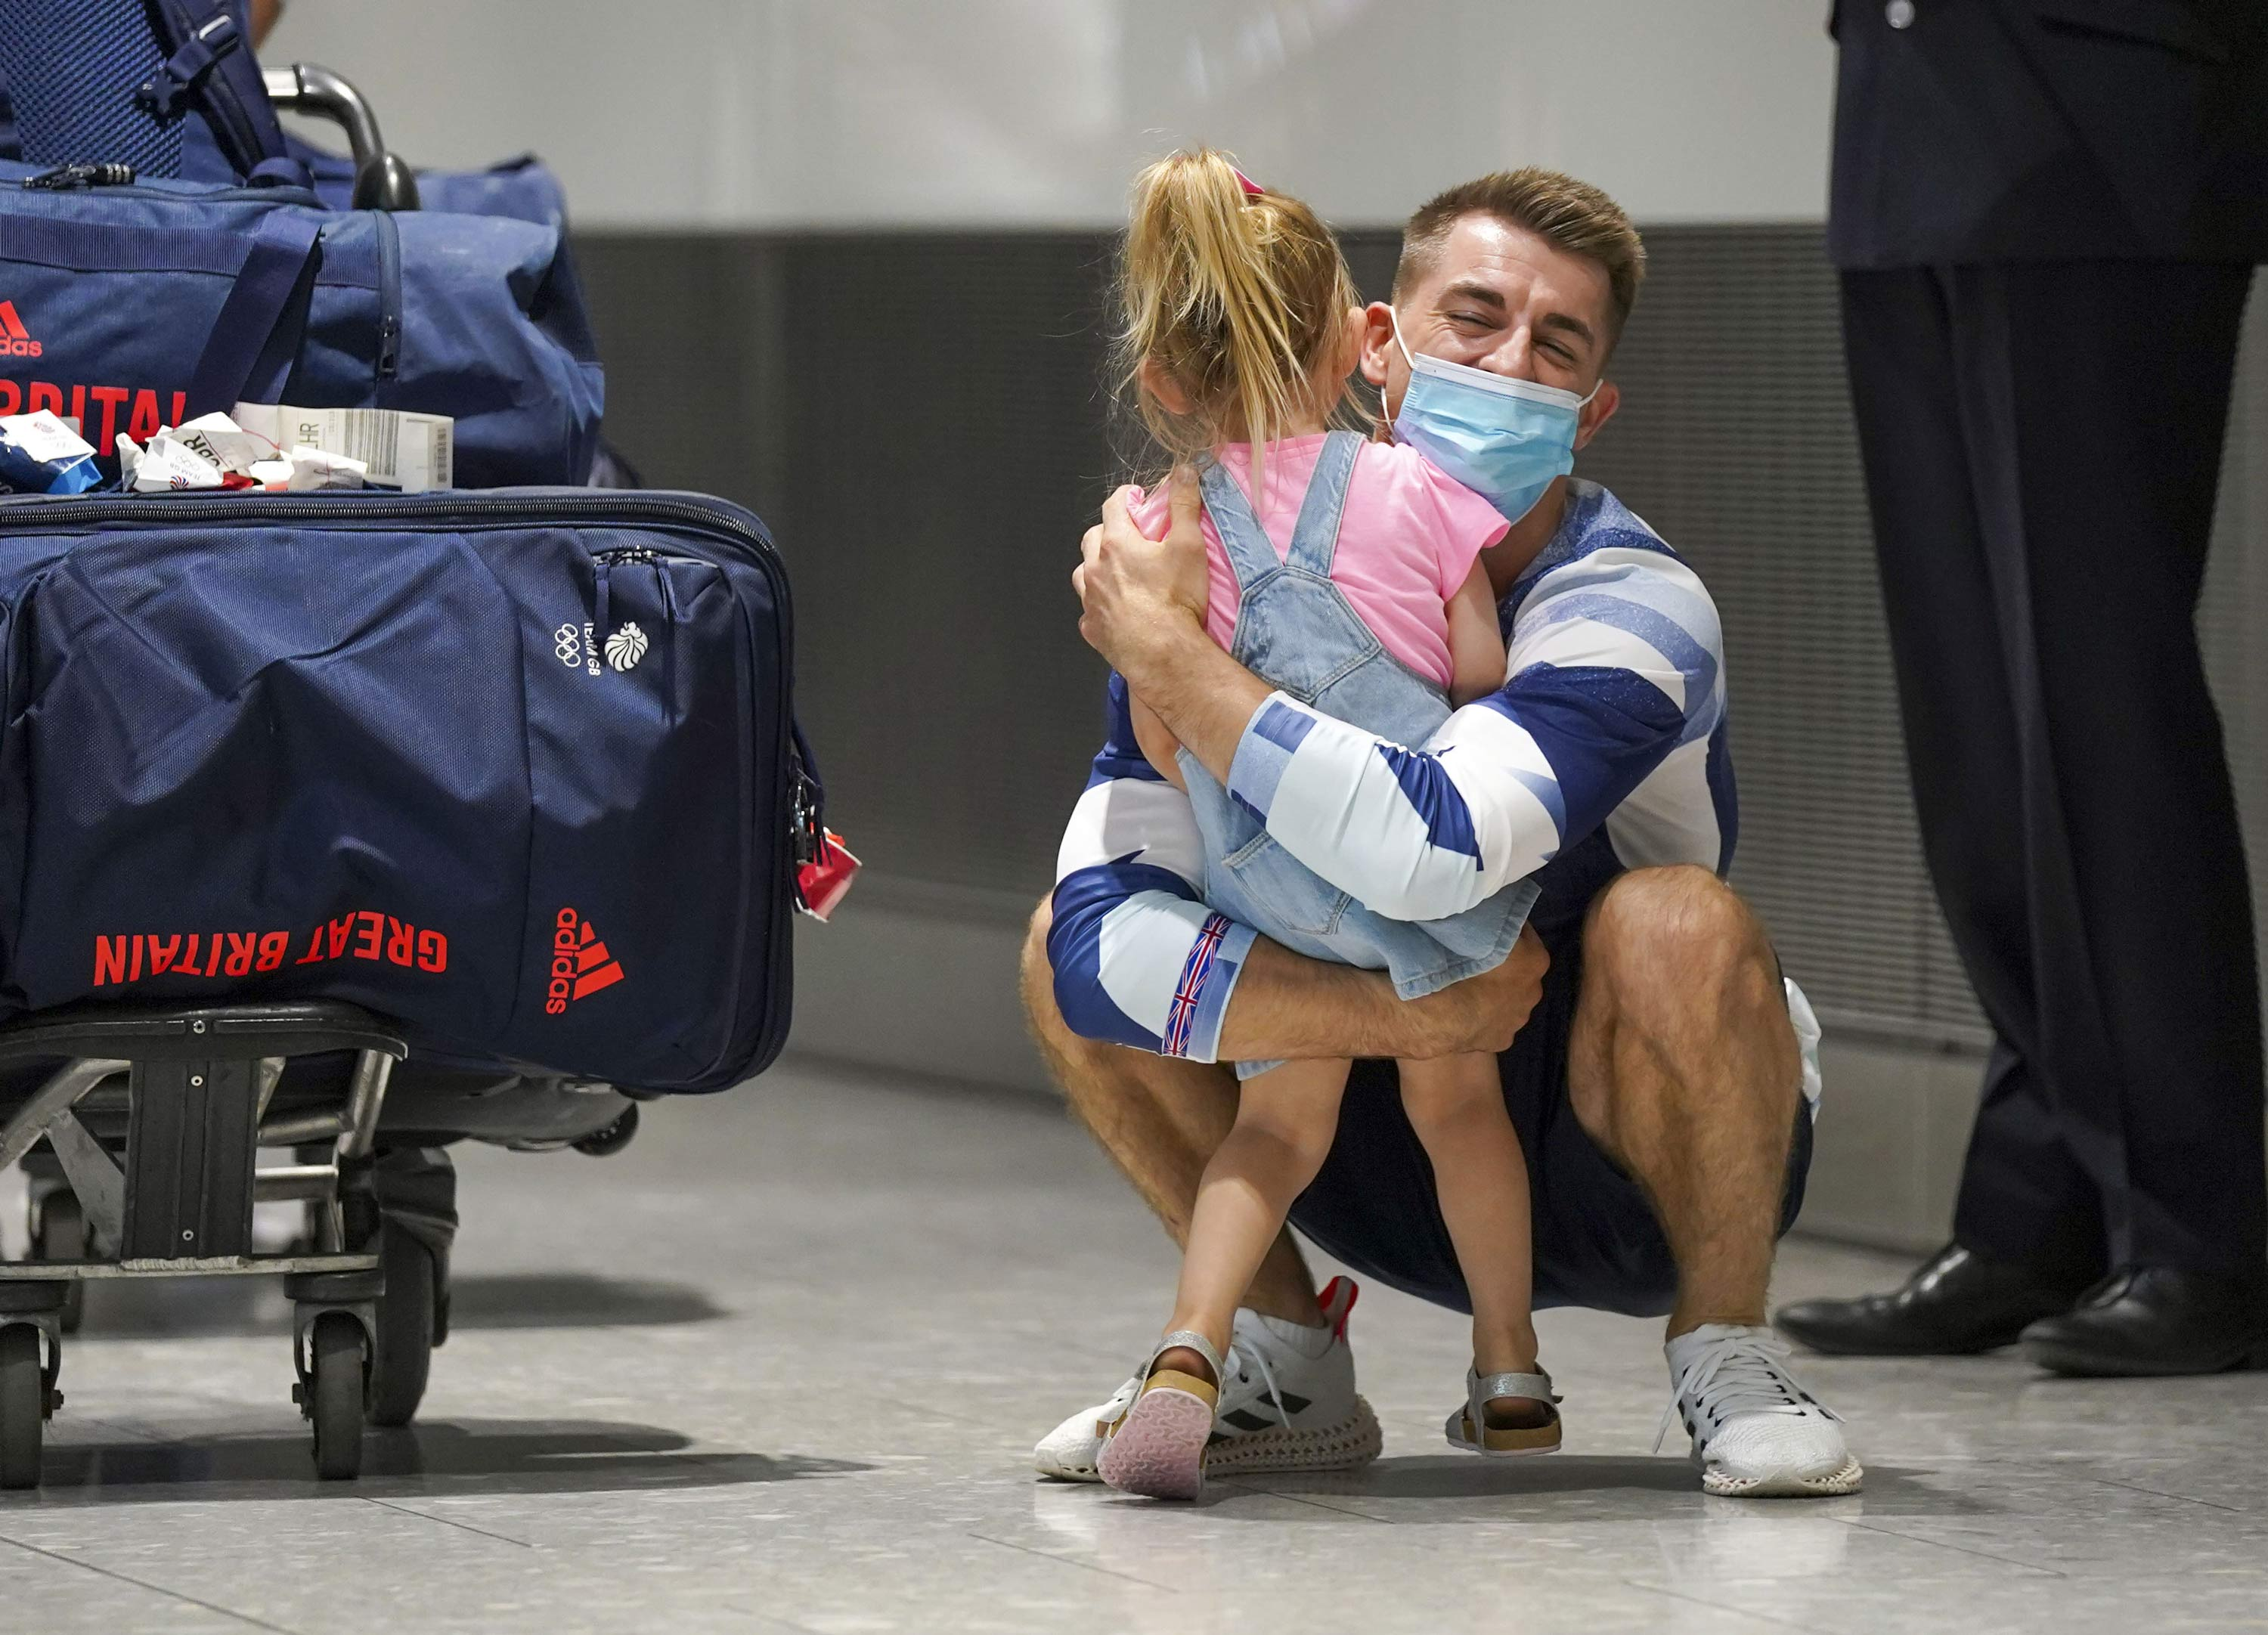 Olympic gymnast Max Whitlock hugs his daughter as he arrives back at London Heathrow Airport from the Tokyo 2020 Olympic Games on August 3.